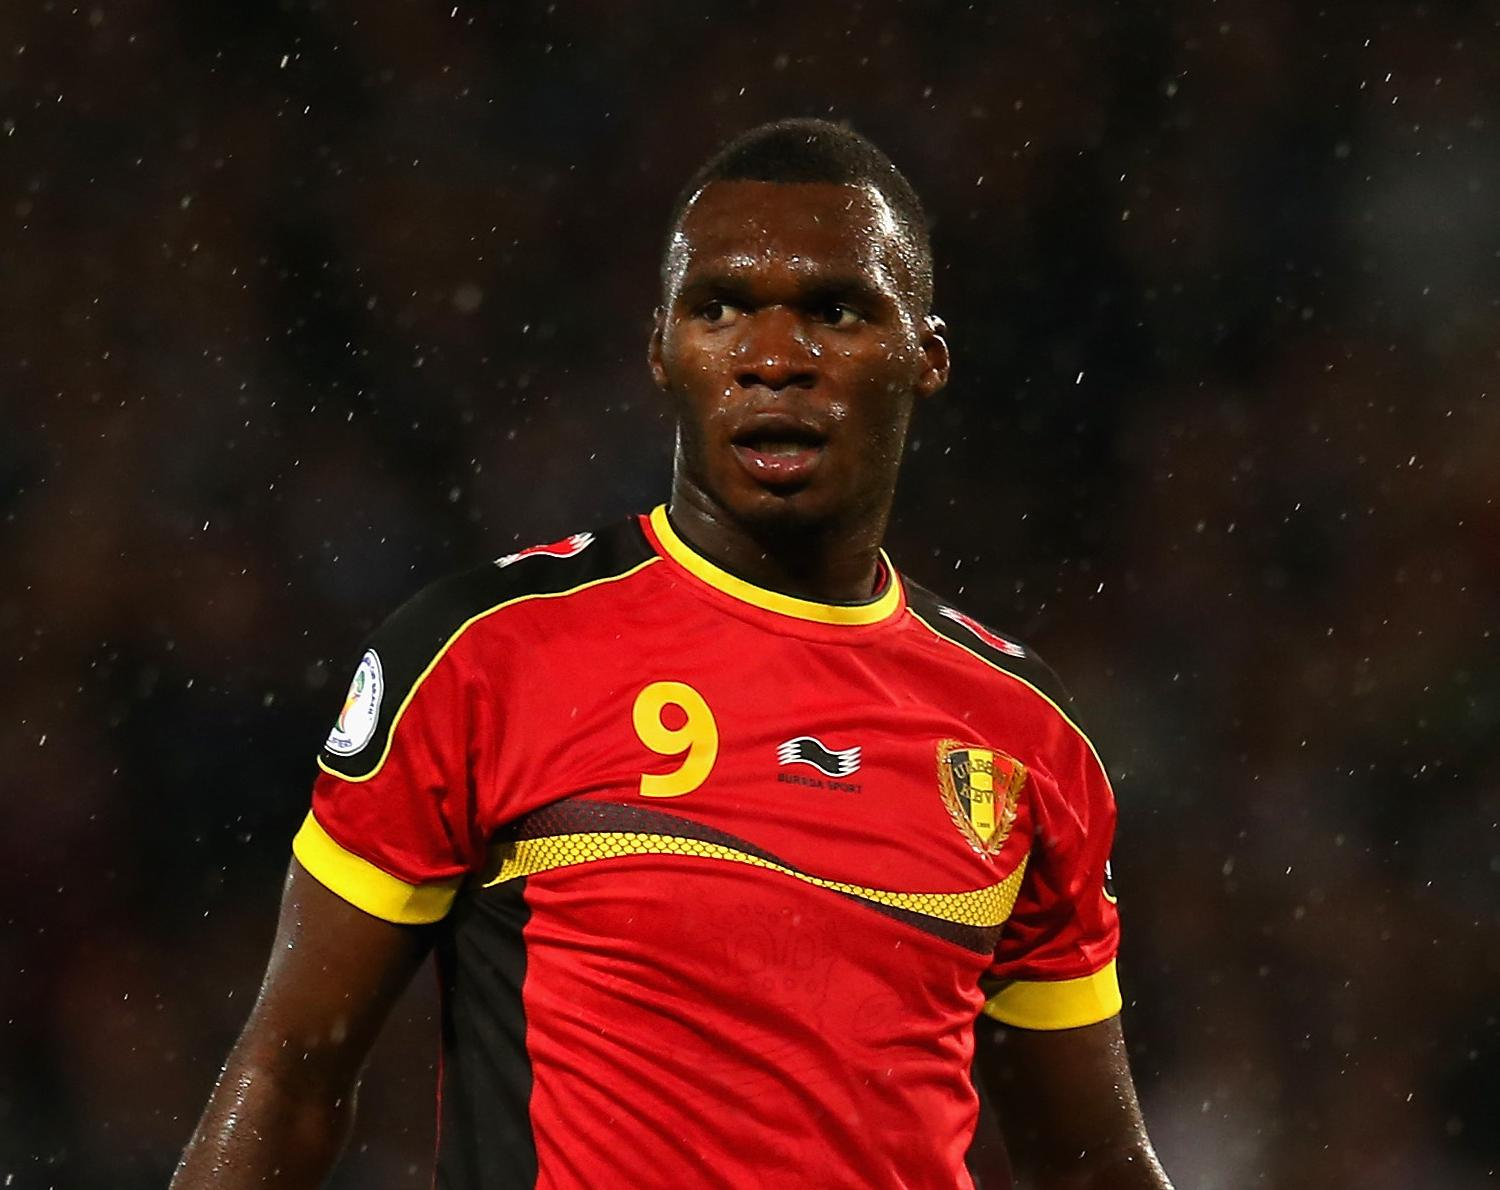 Aston Villa F.C. manager Tim Sherwood has revealed the club may be forced to sell star striker Christian Benteke if the player's buyout clause is satisfied.